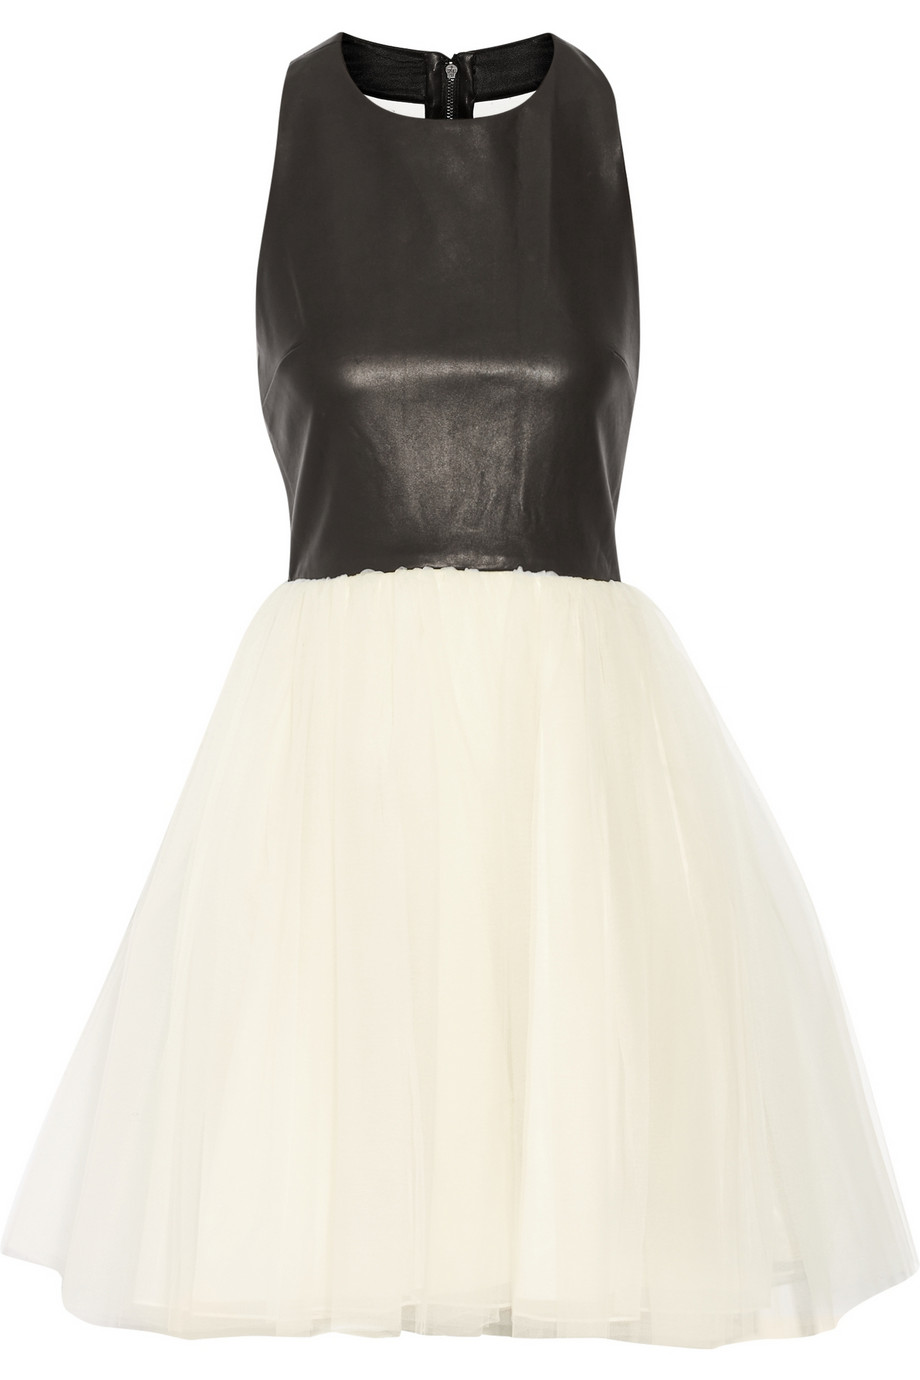 Alice   Olivia Gennifer leather and tulle dress – 50% at THE OUTNET.COM